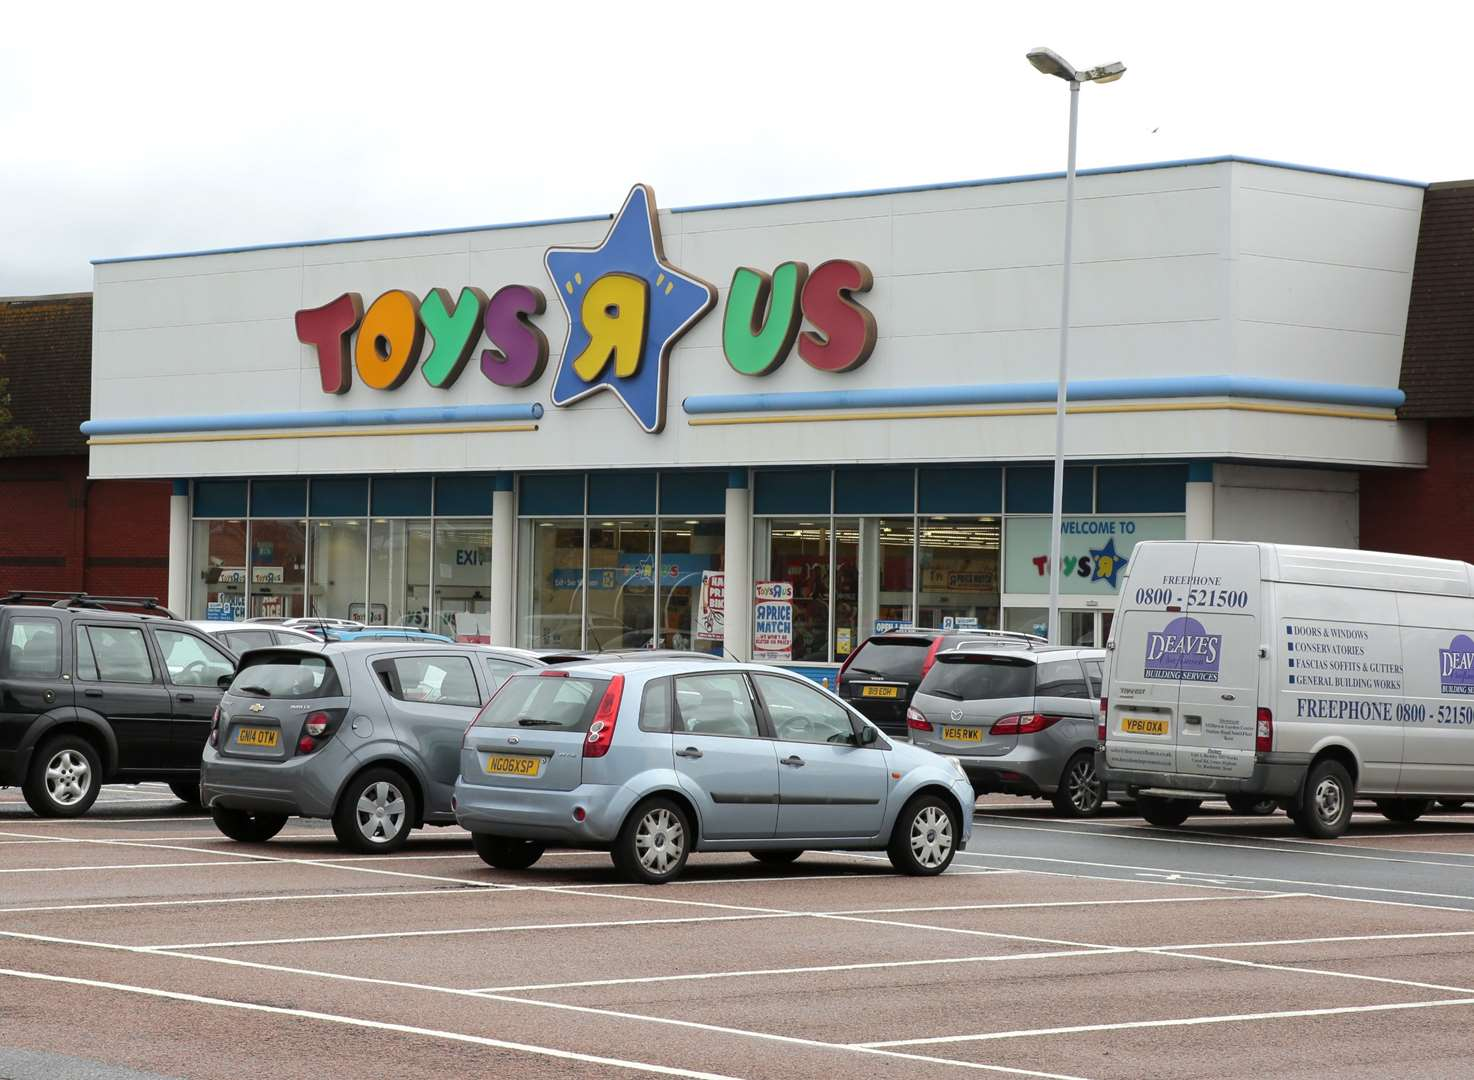 New threat to jobs at Toys R Us